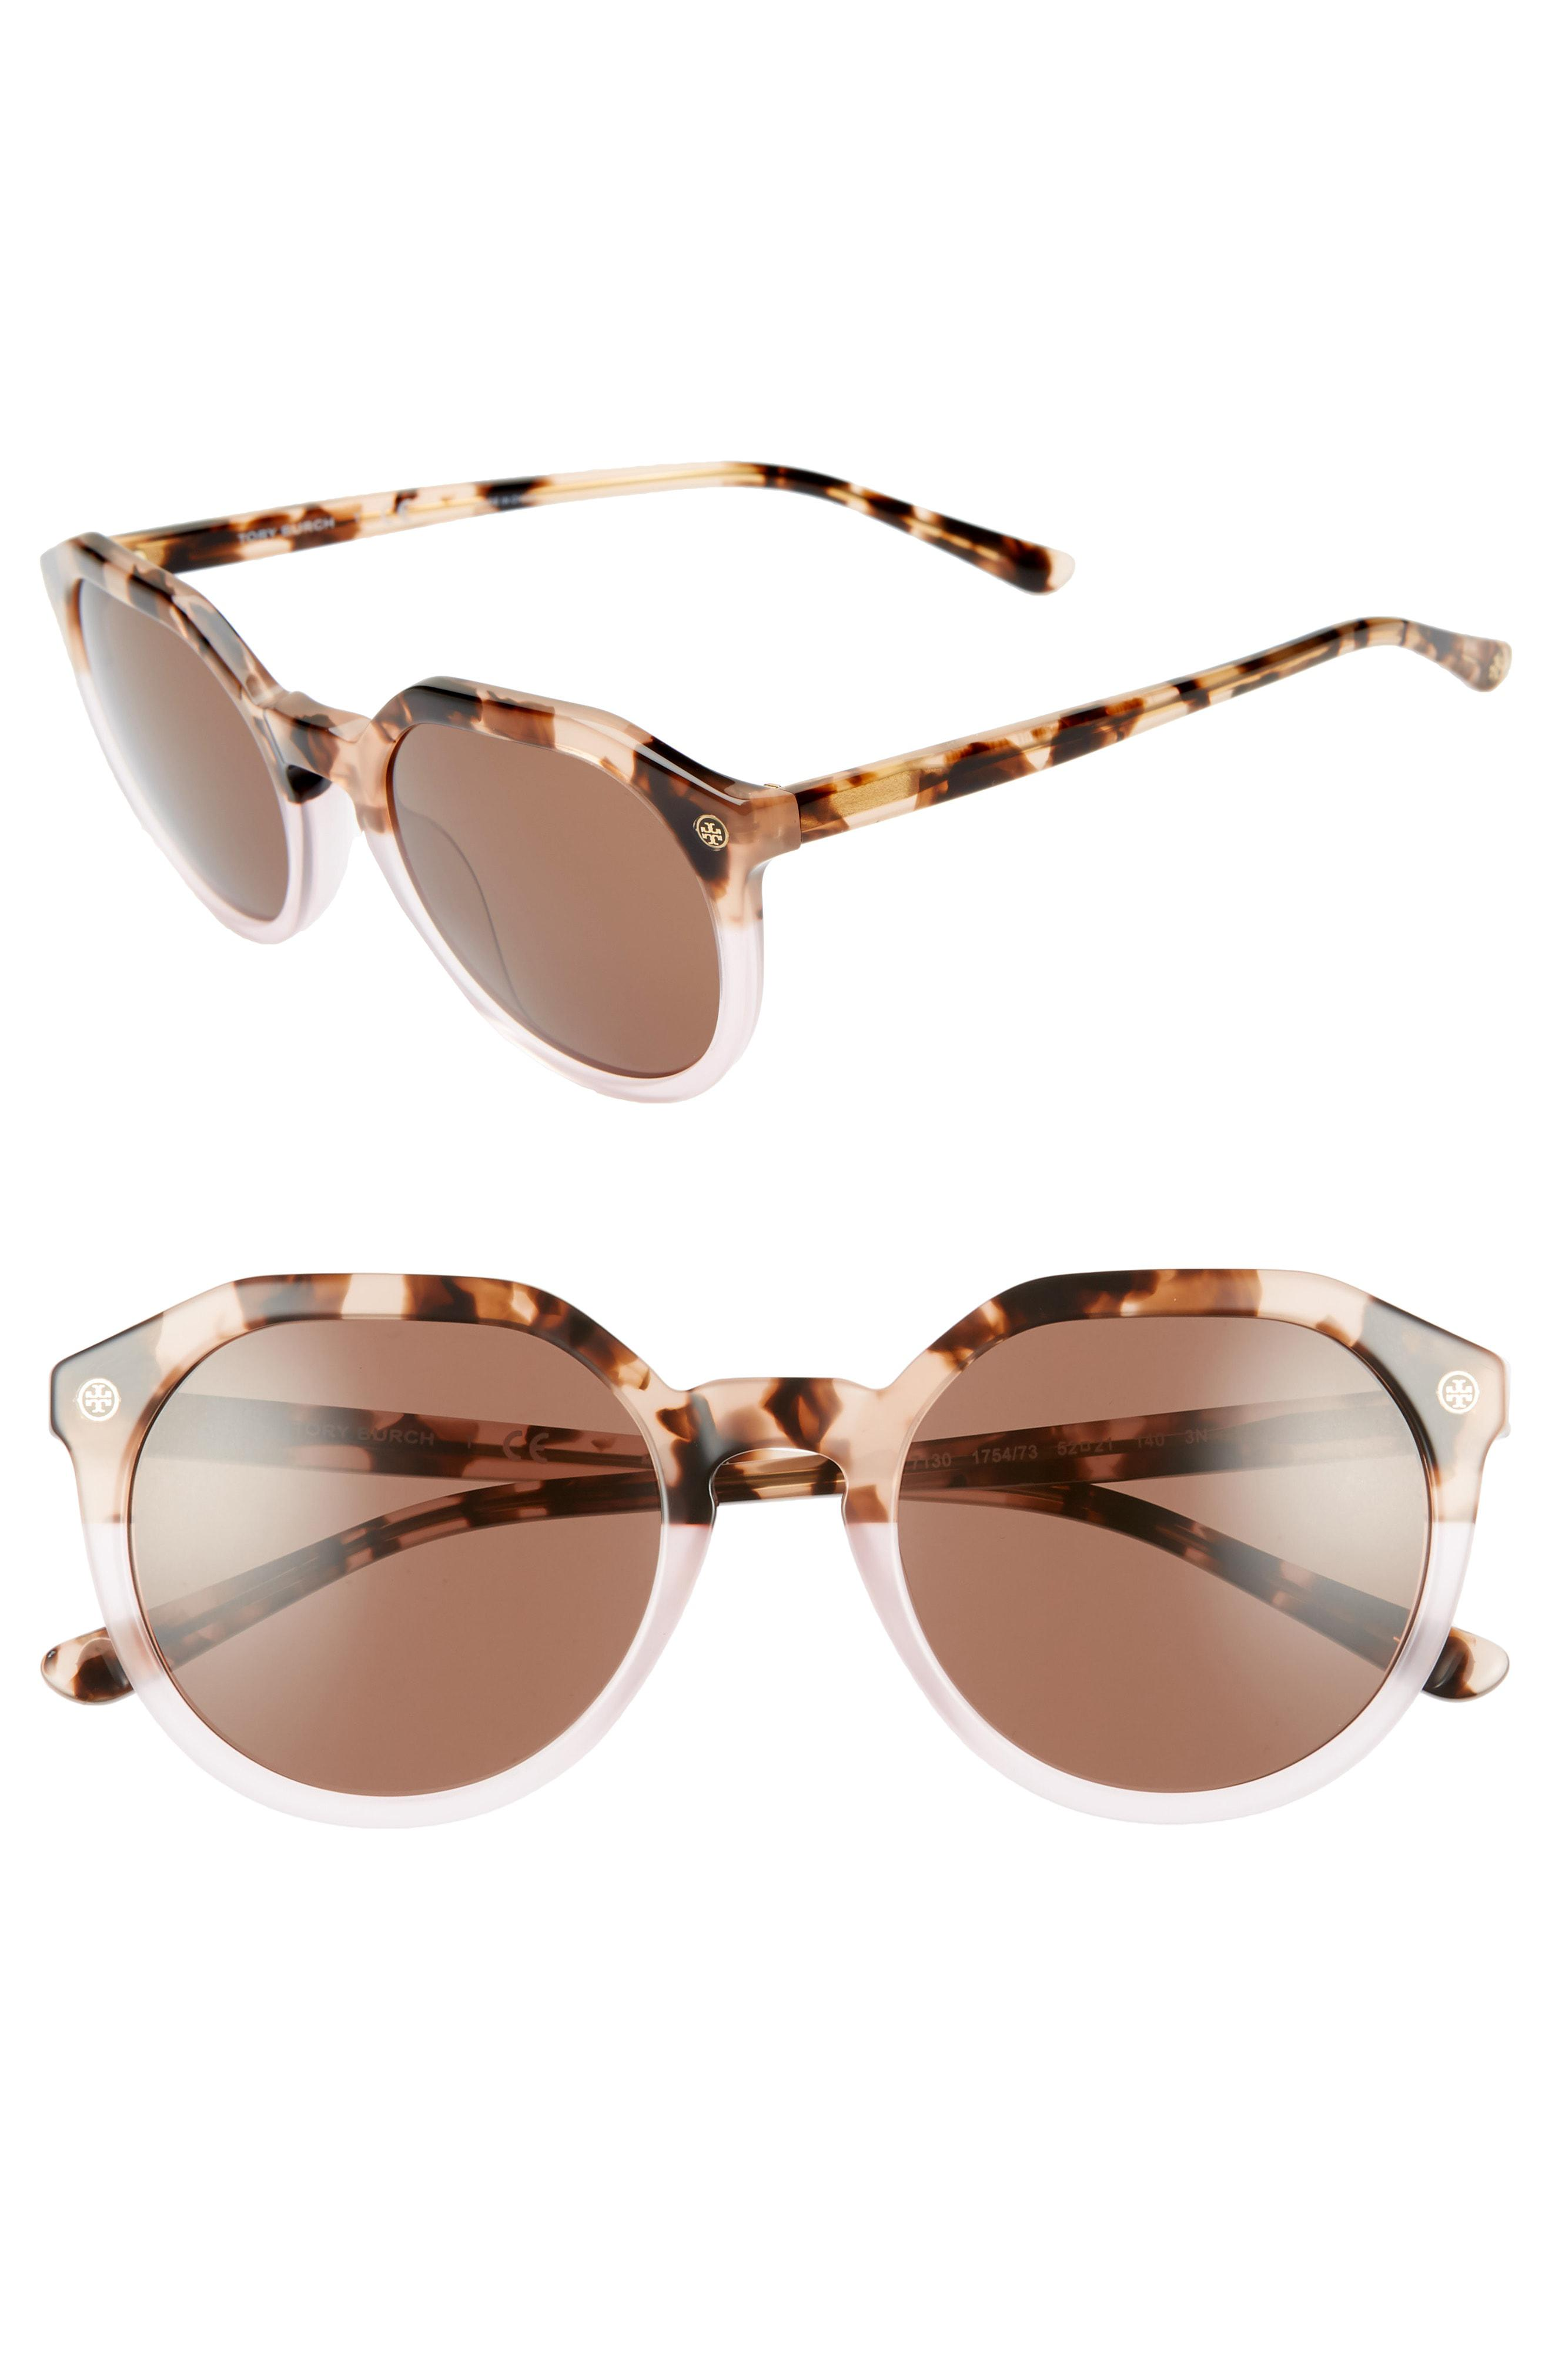 563f3cbcab Lyst - Tory Burch 52mm Round Sunglasses - in Brown